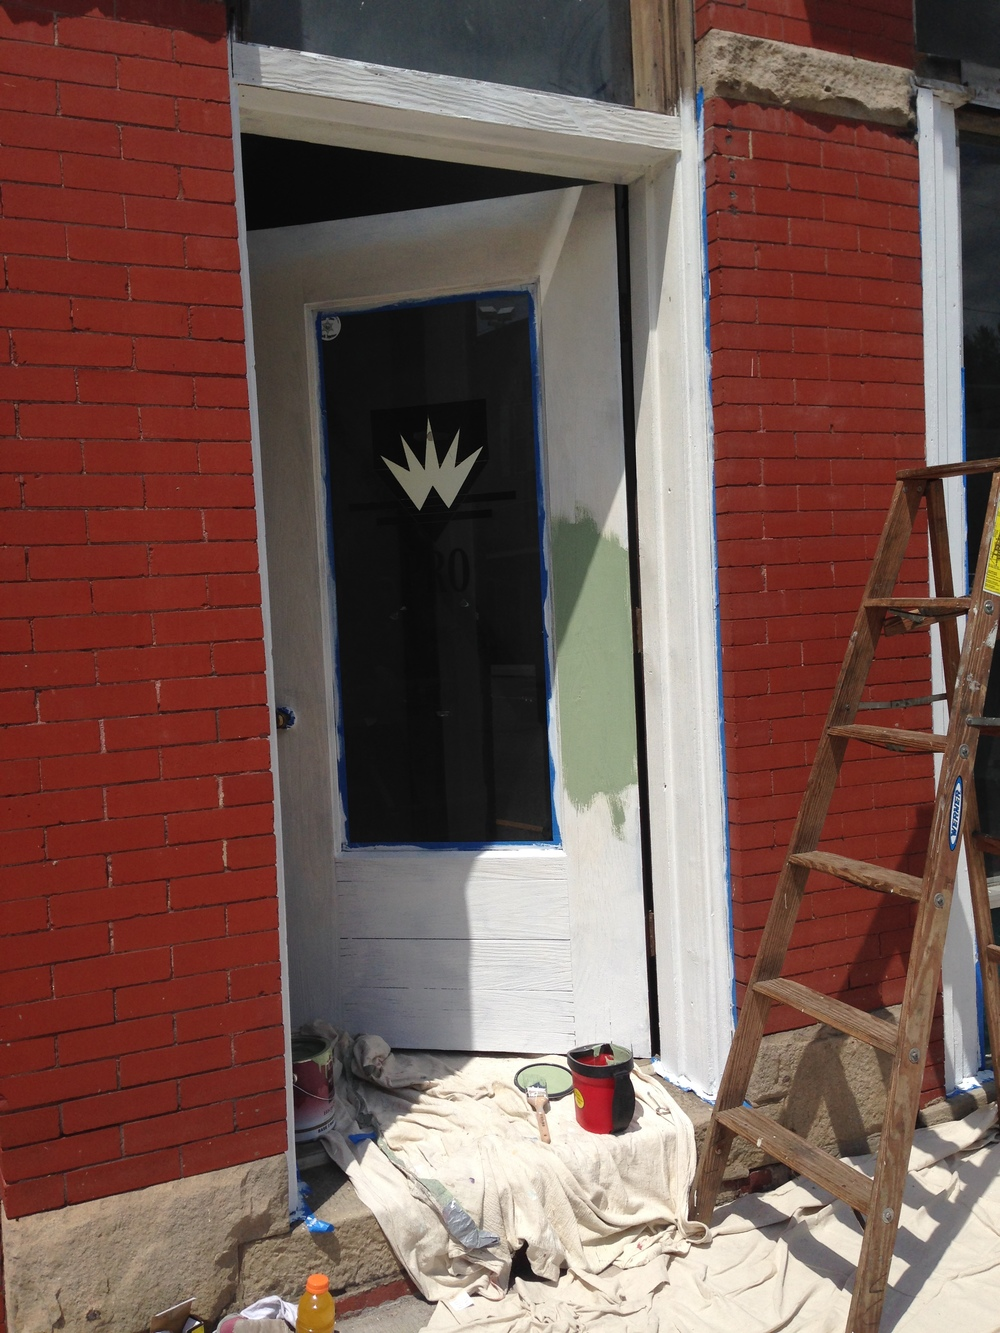 Getting started on the Bank Building side door.